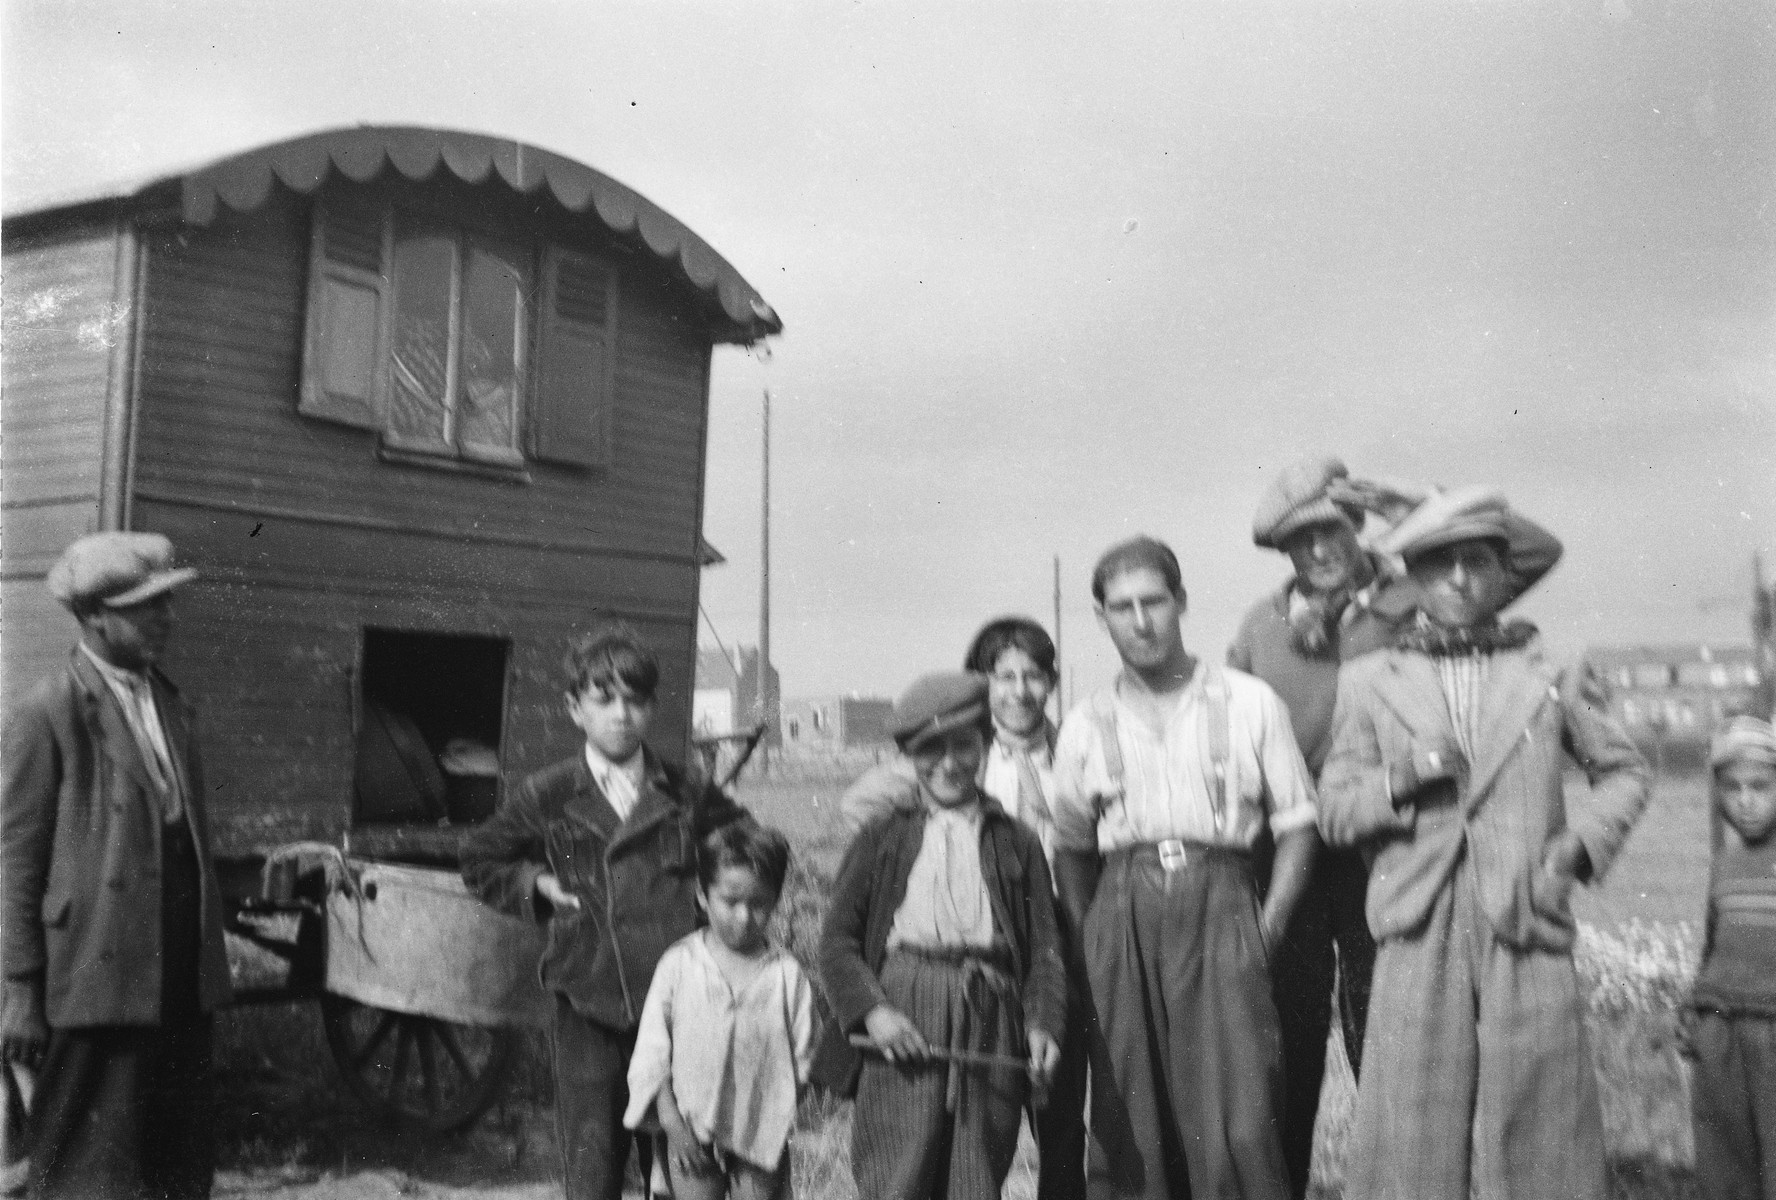 A group of Roma (Gypsy) men and boys poses by their caravan.